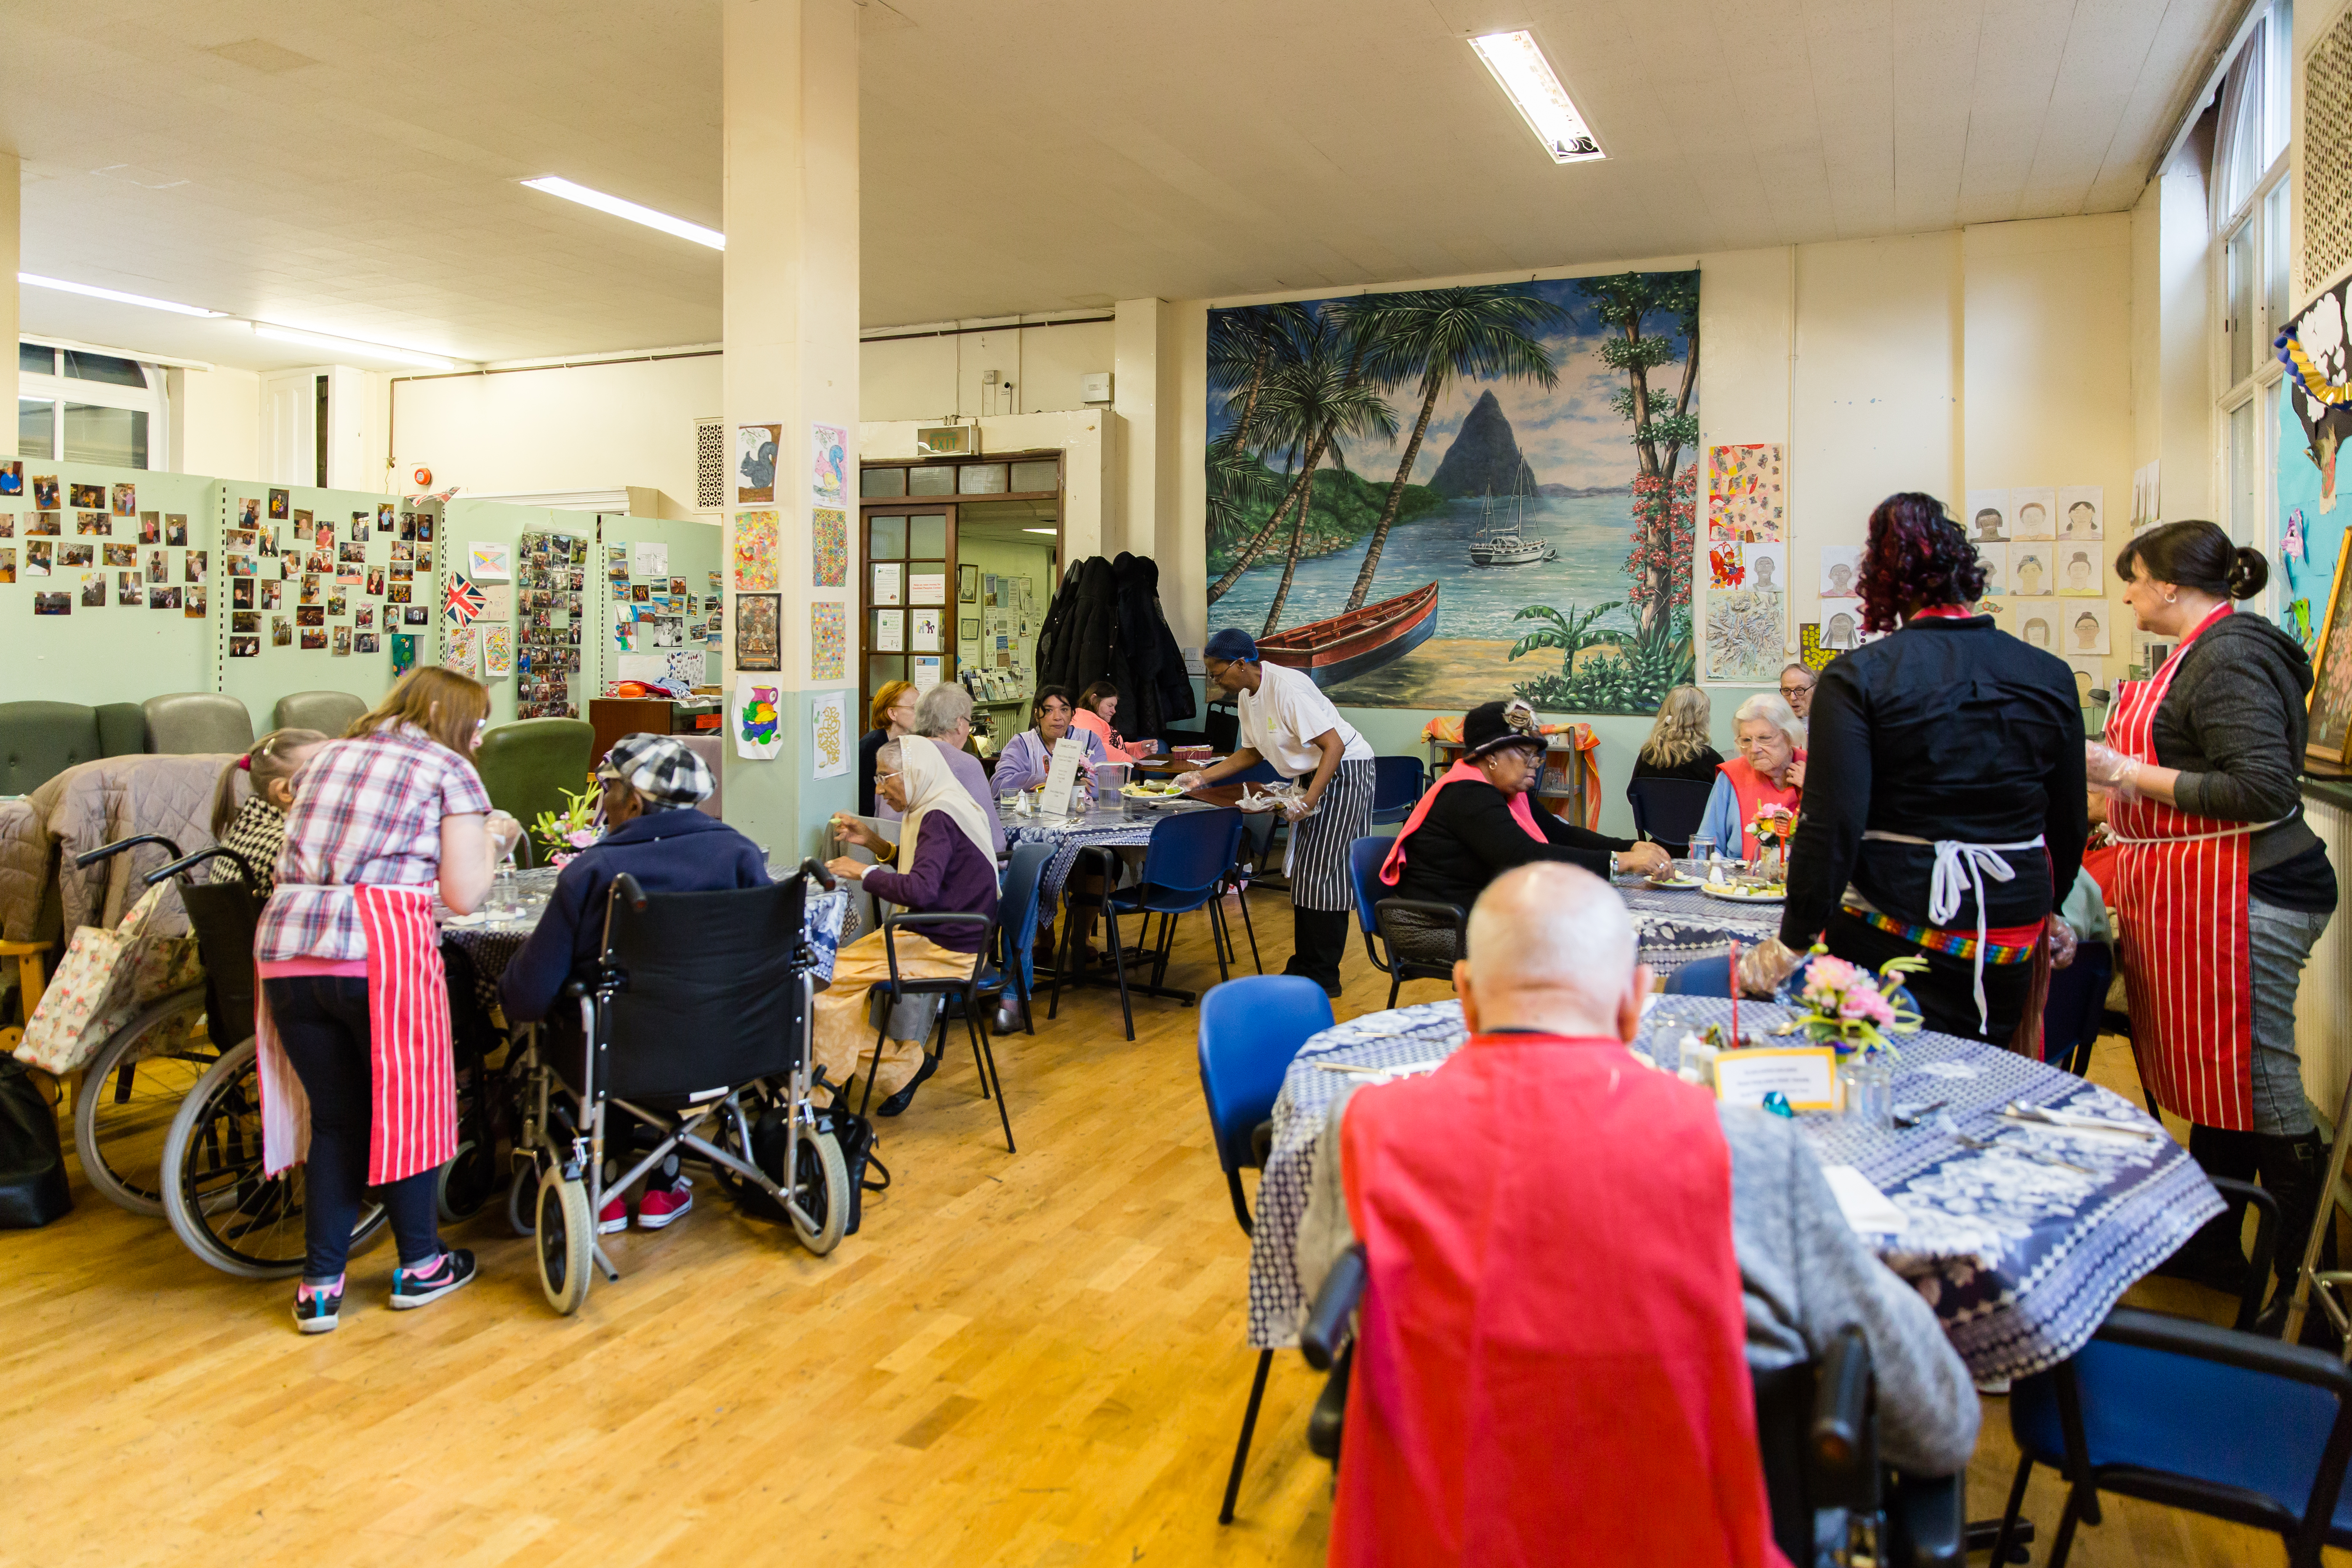 Disabled People's Contact volunteers laying up the table for 24 older people